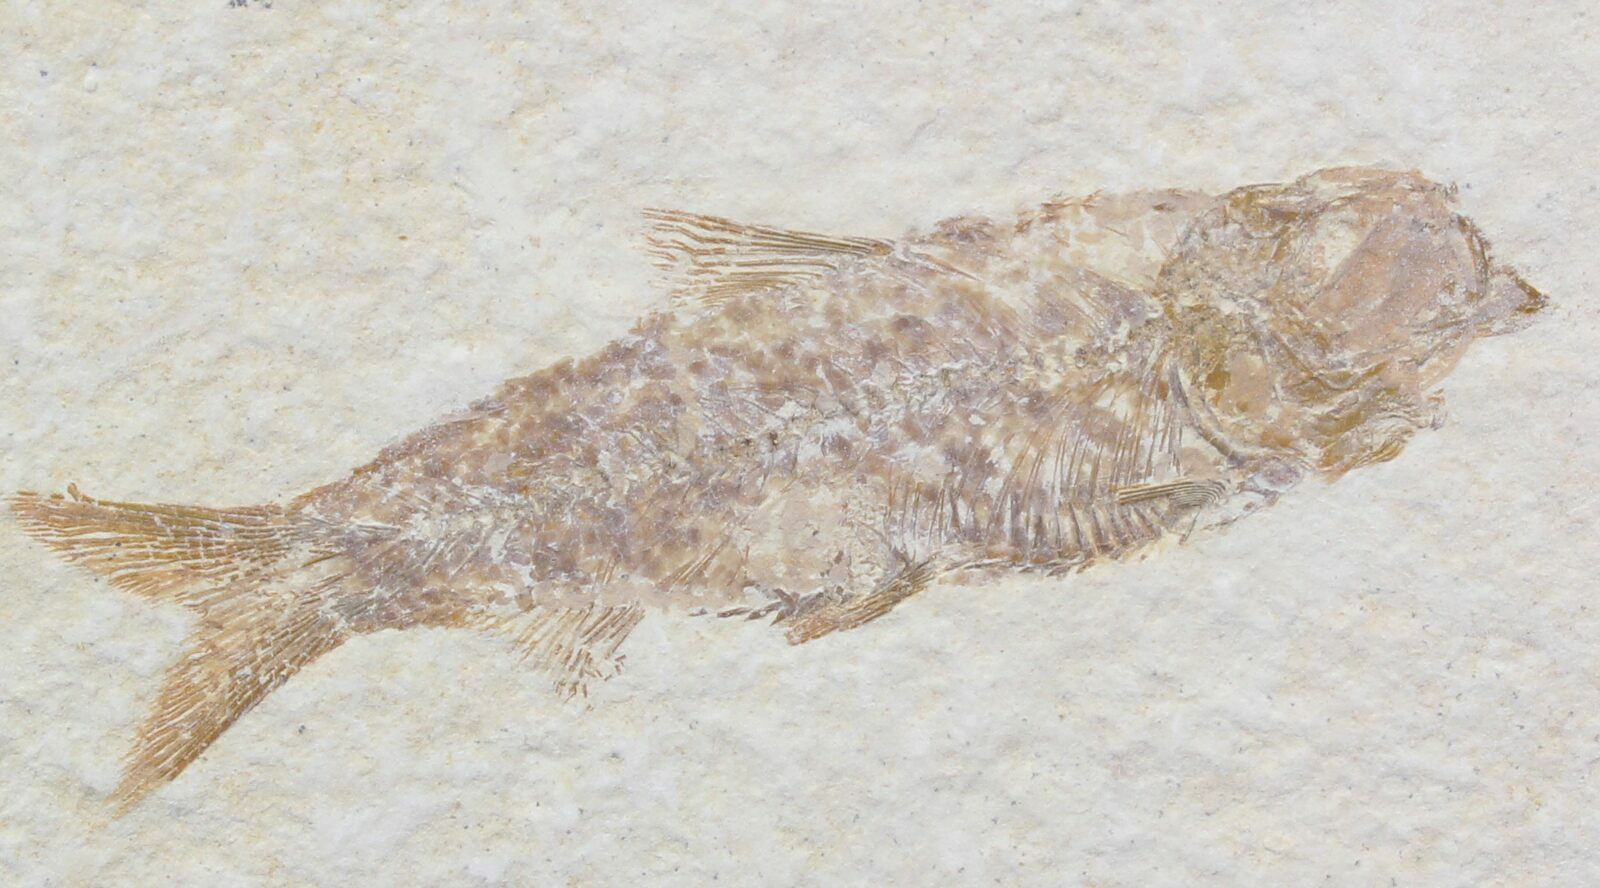 2 2 knightia fossil fish wyoming for sale 29840 for Fish fossils for sale